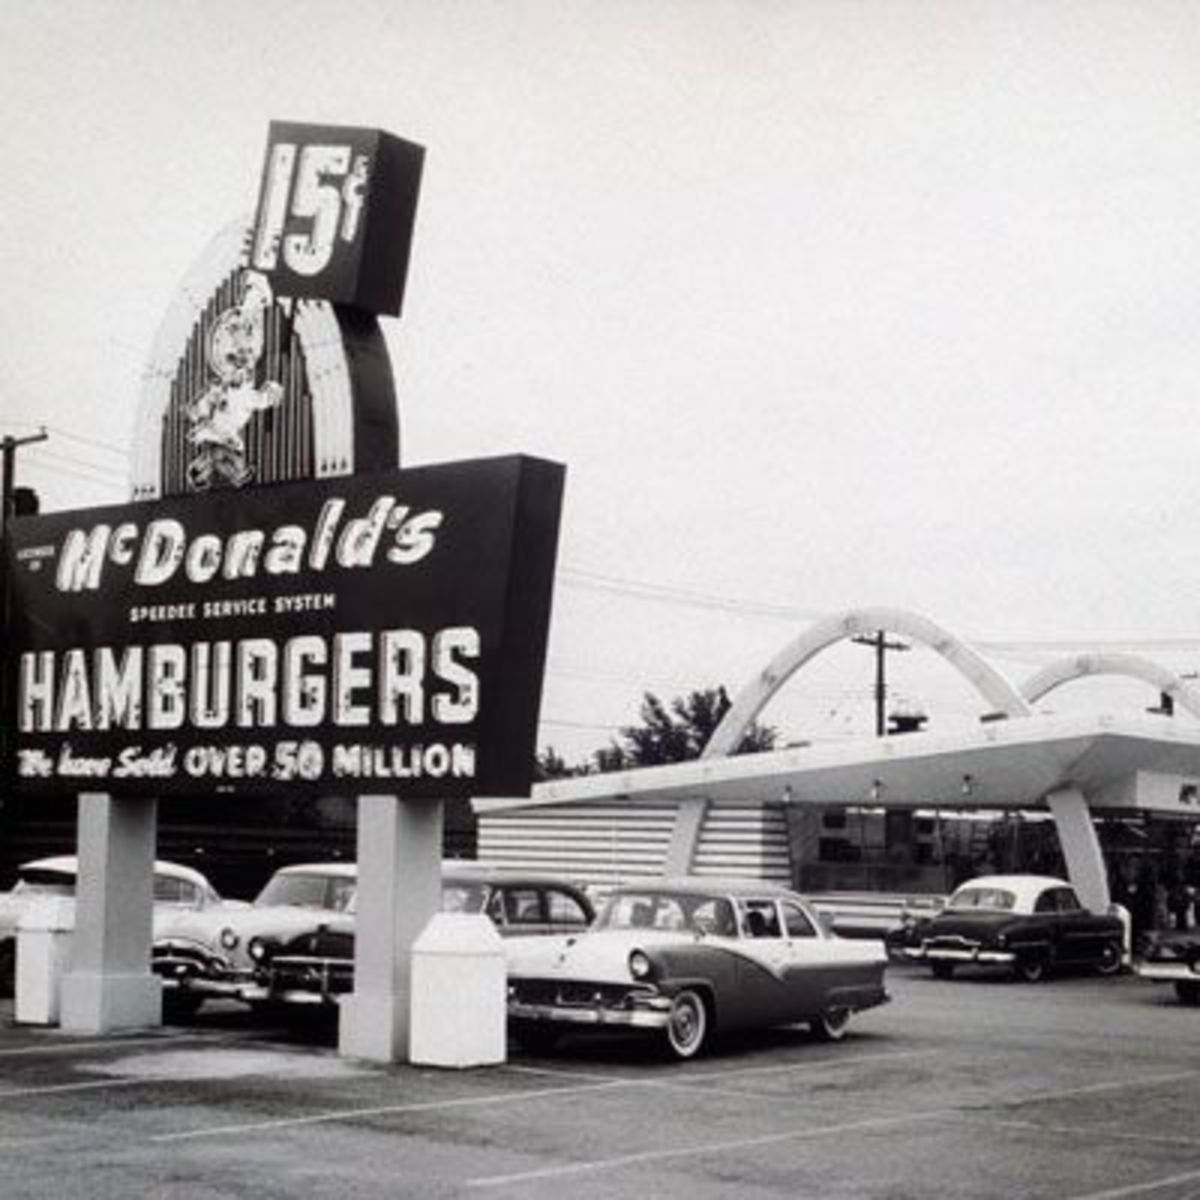 McDonald's originated in San Bernardino, and is now a museum.